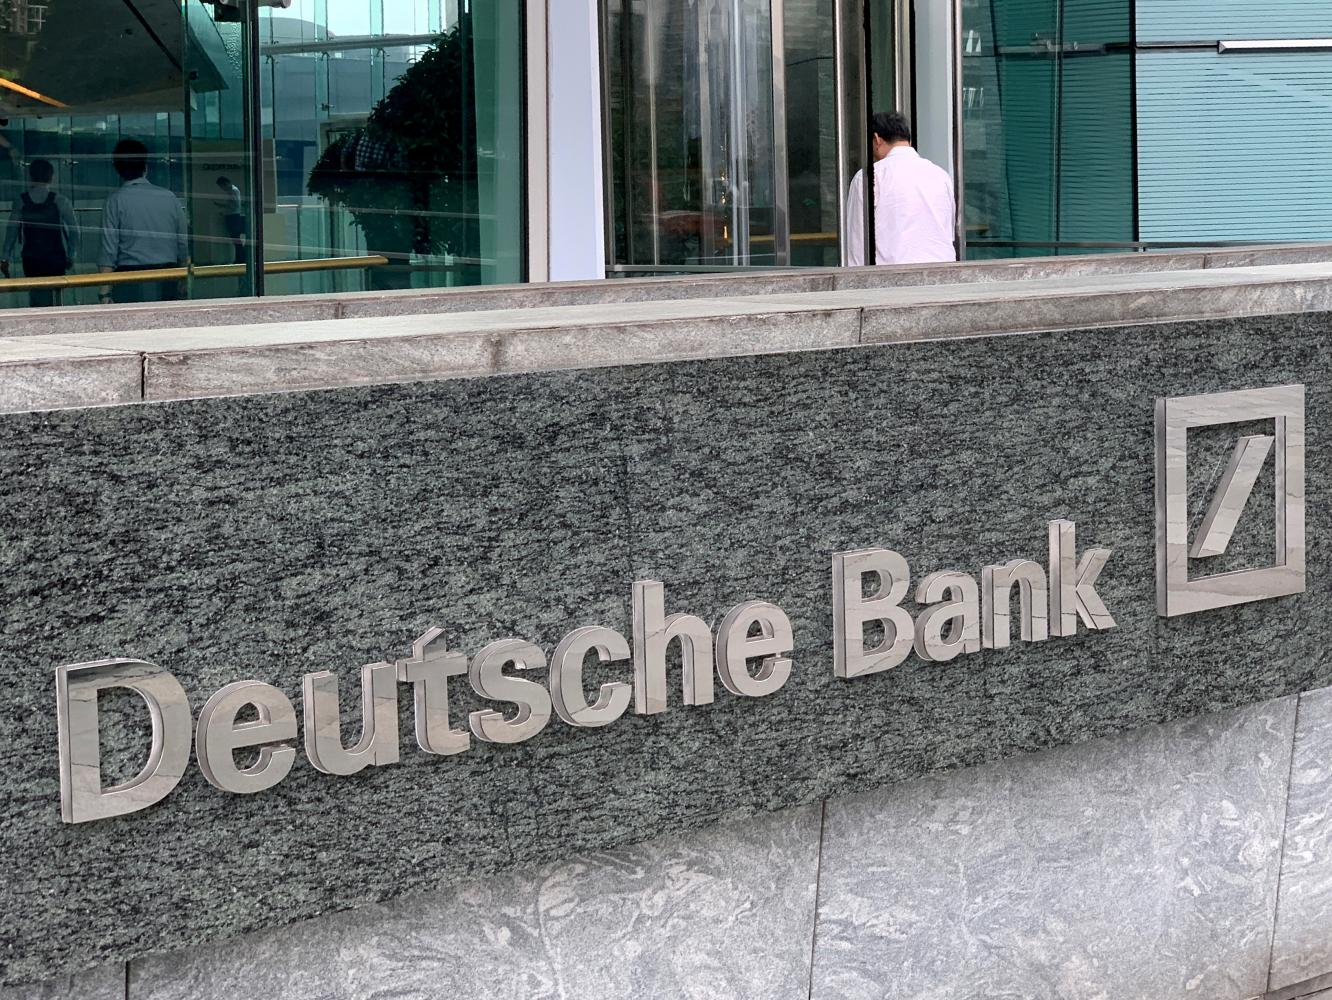 The logo of Deutsche bank is seen in Hong Kong, one of the 14 countries in the Asia Pacific region where the bank operates. REUTERS